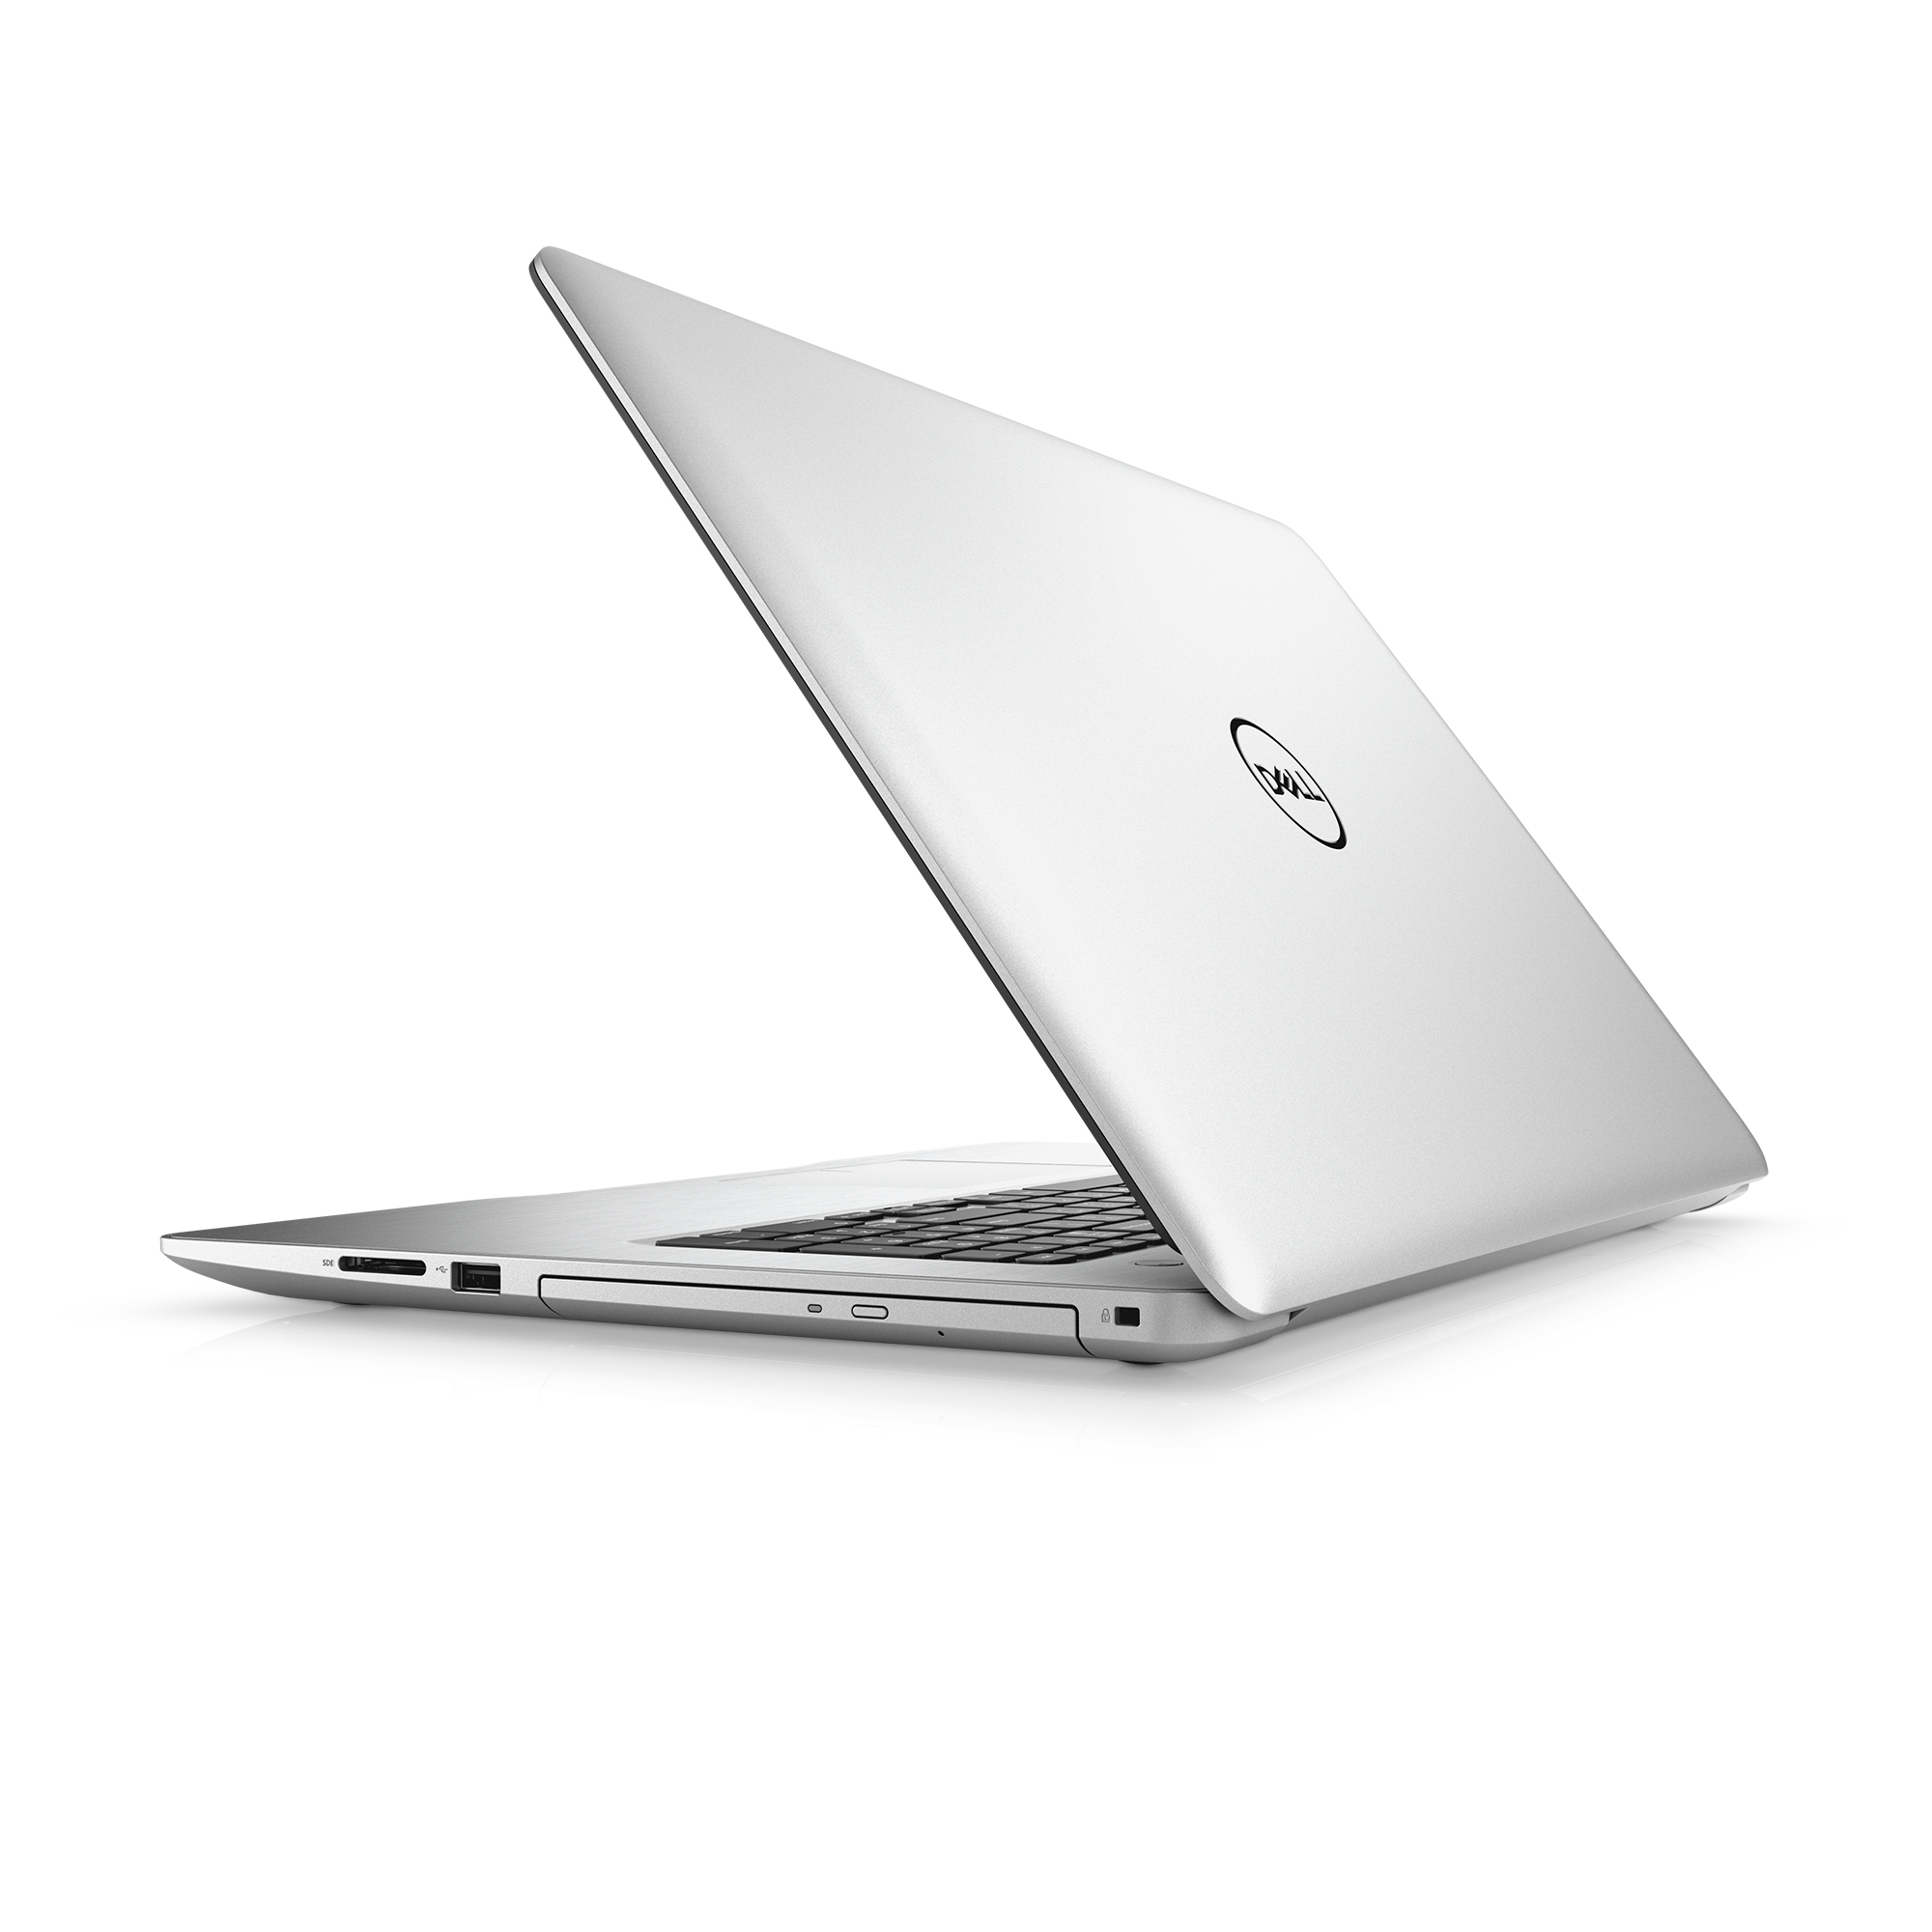 Dell Inspiron 17 5000 Laptop 173 Inch Fhd Intel Core I7 8550u Unique Cooling Pad Is 668 16gb 2400mhz Ddr4 2 Tb 5400 Rpm Hdd Amd Radeon 530 Graphics I5770 7708slv Walmart